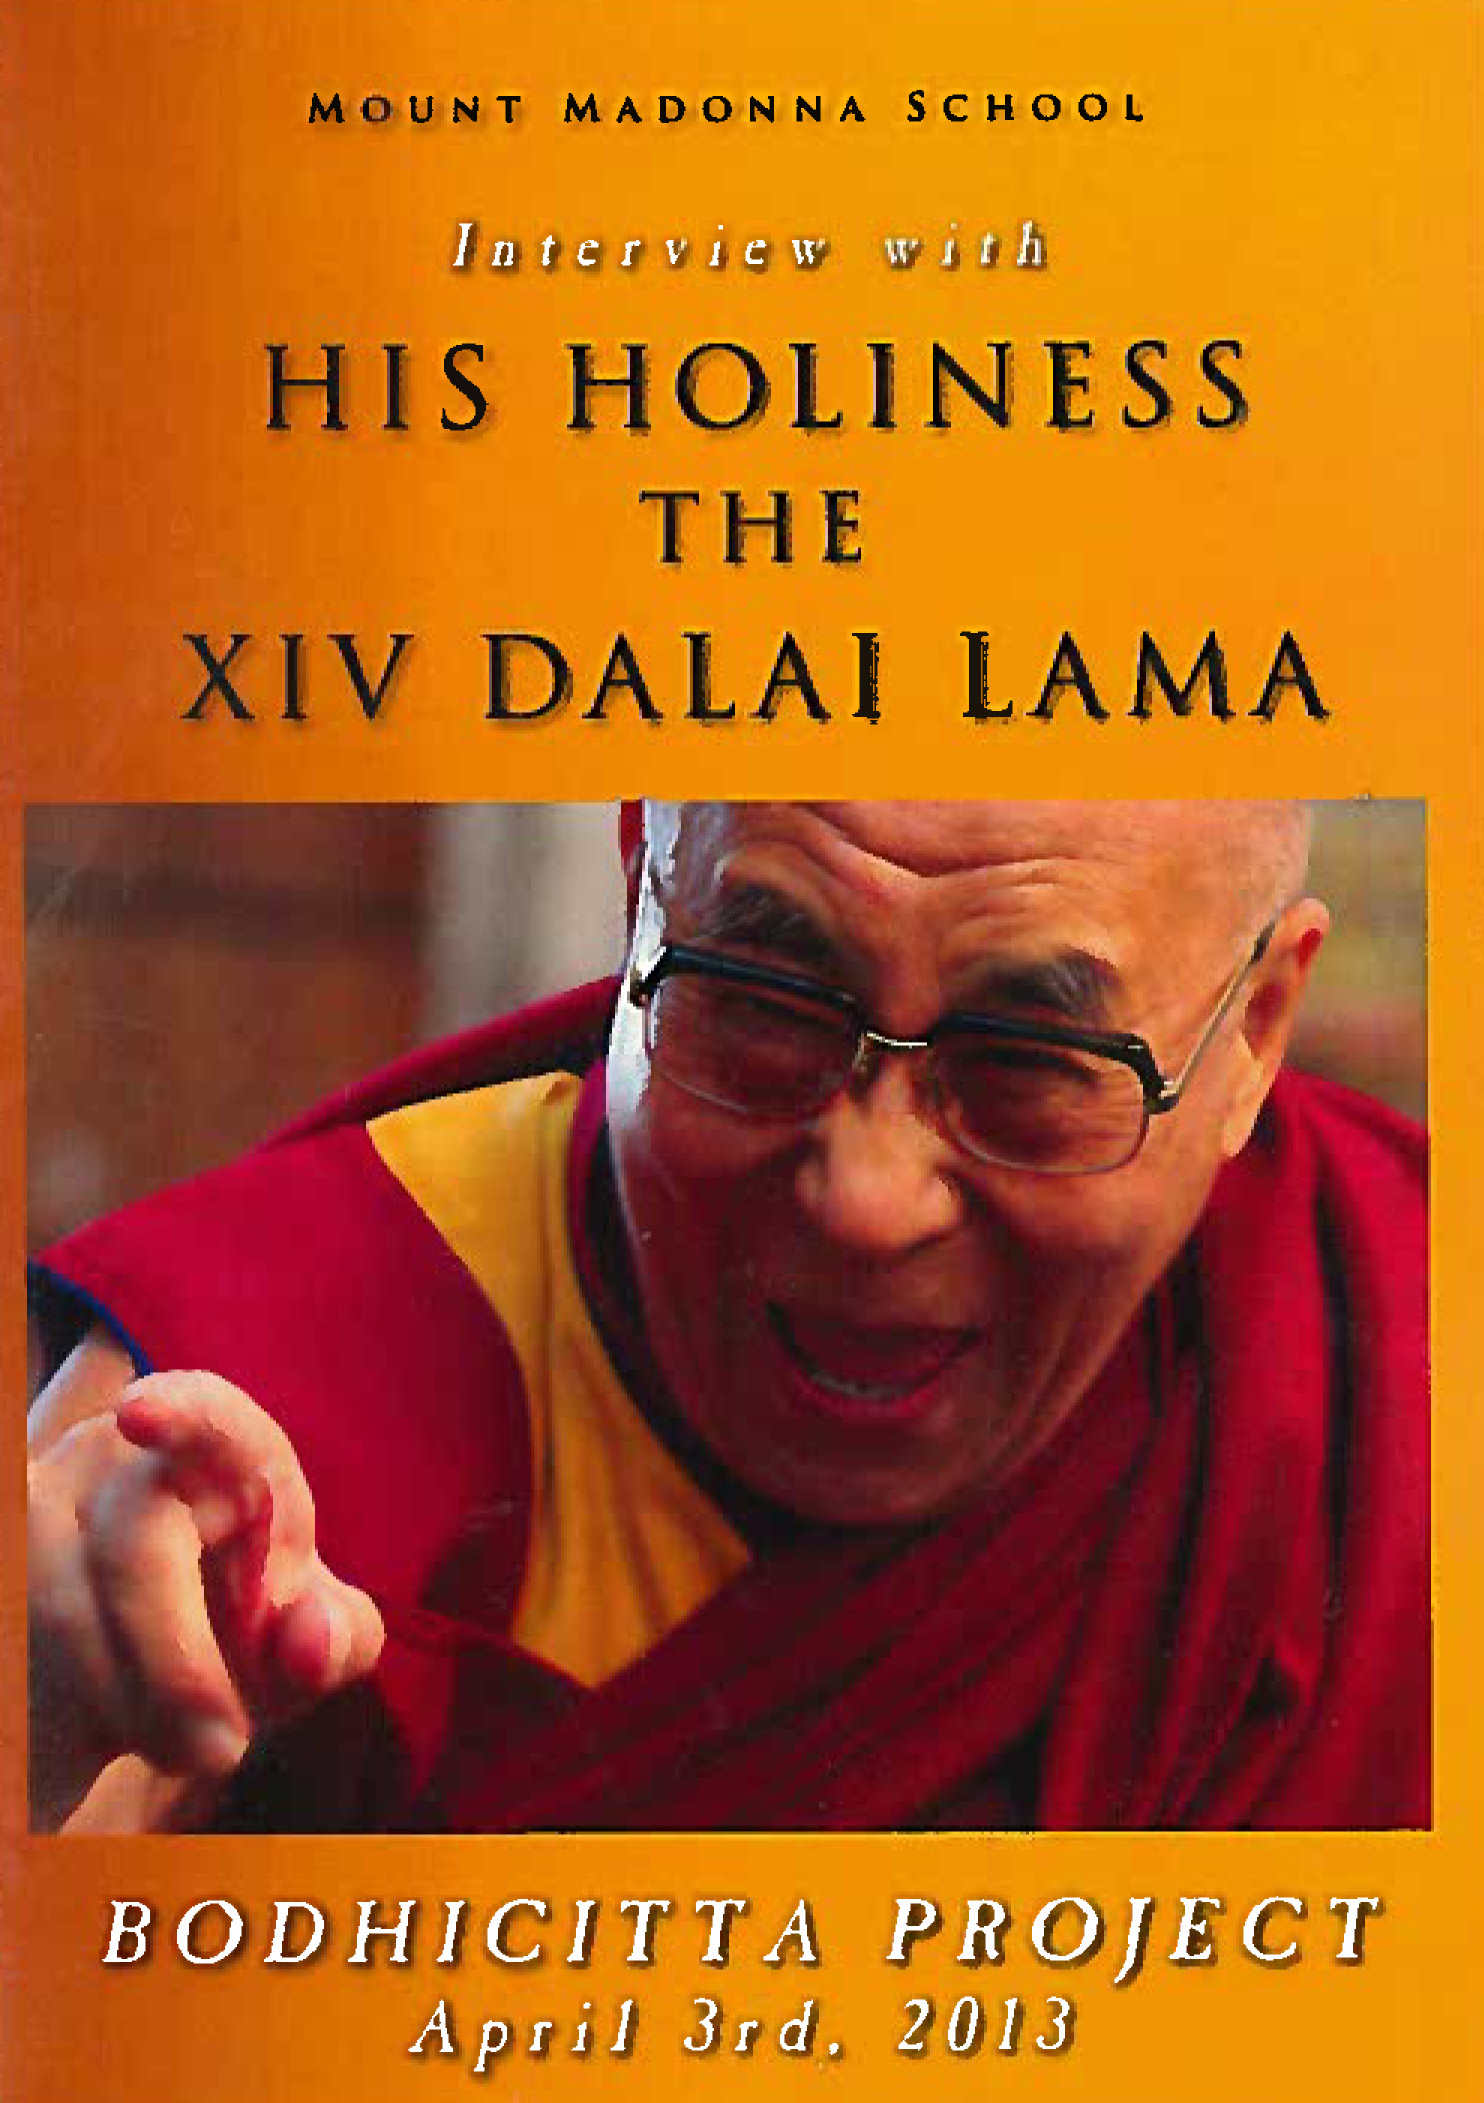 Bodhicitta Project 2013: Interview with His Holiness the XIV Dalai Lama DVD